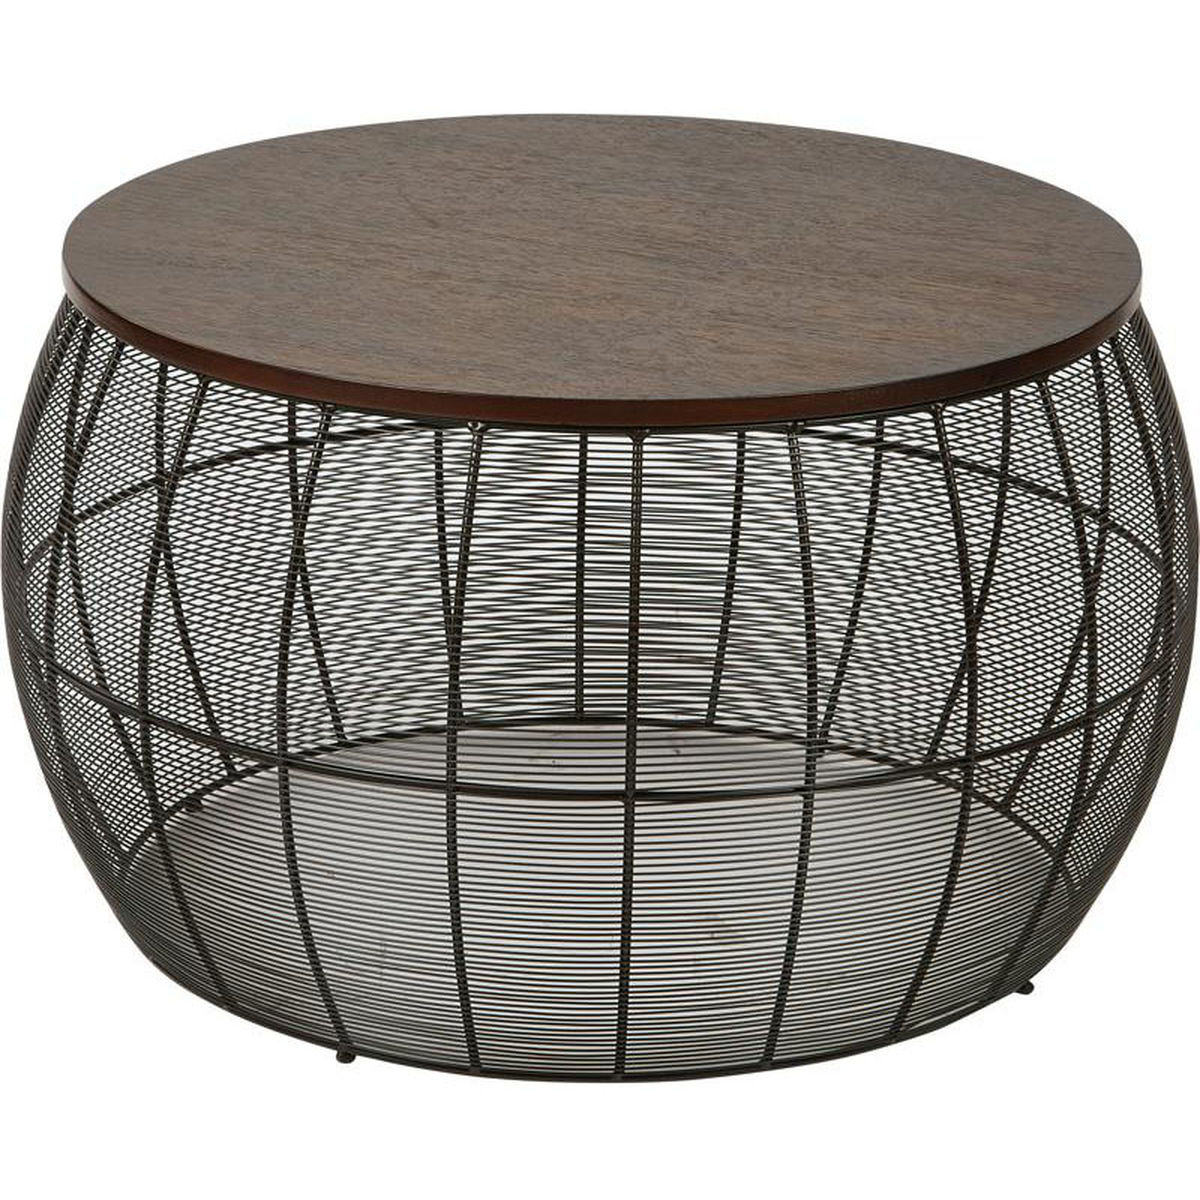 camden piece round accent tables bizchair office star products metal table our osp designs with wood top espresso glass living room astoria dining large grey lamp fold patio